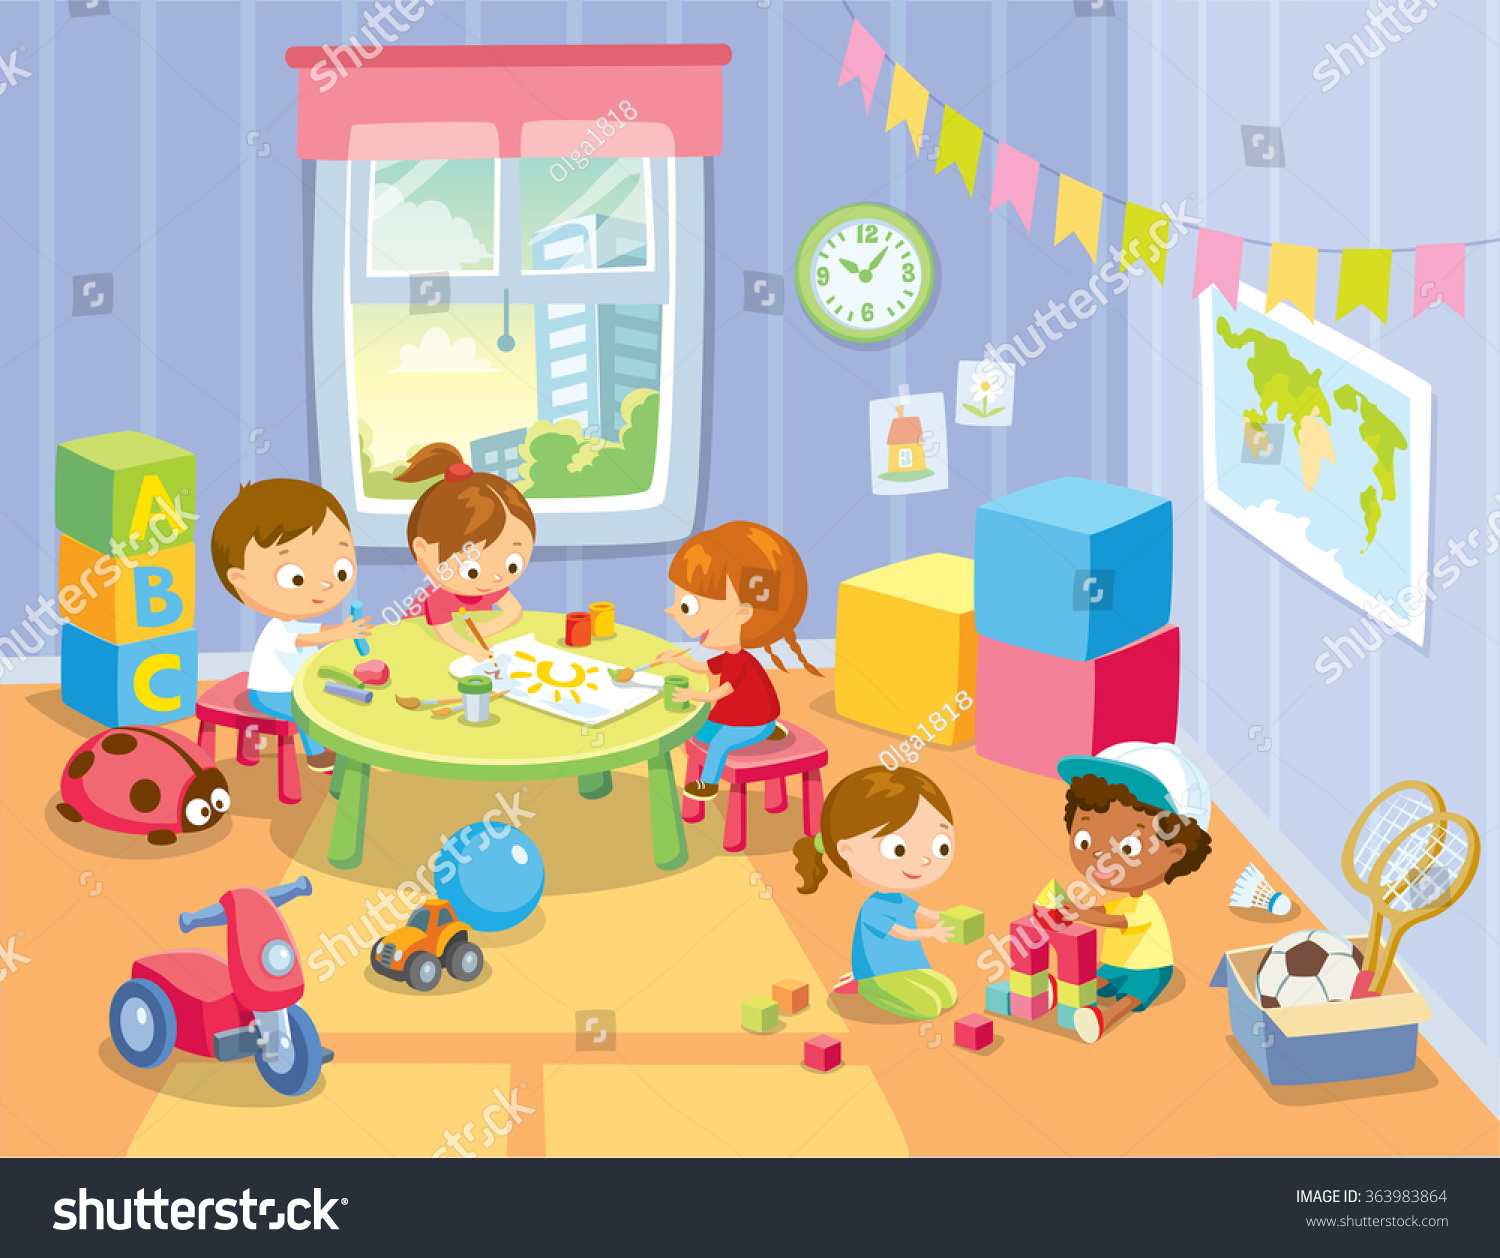 Childrens Activity Play Room Stock Vector 363983864